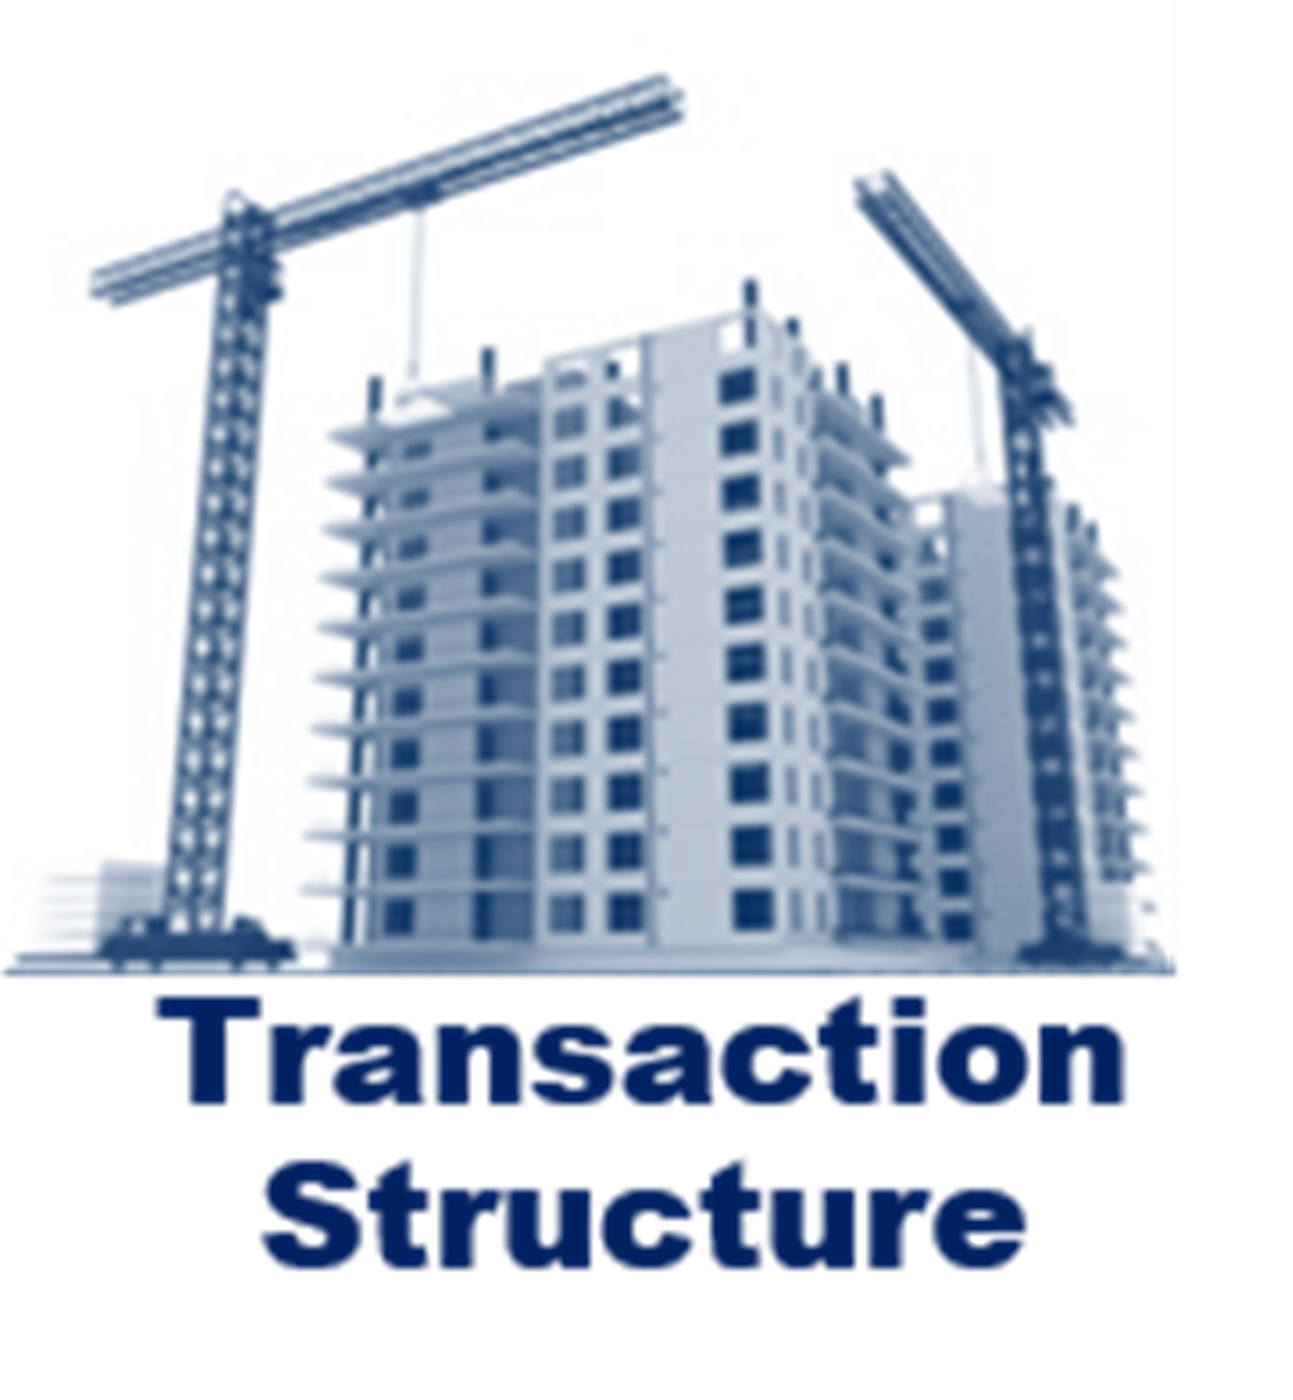 Deal Structures Today: Avoiding Tax Traps and Handling Earnout